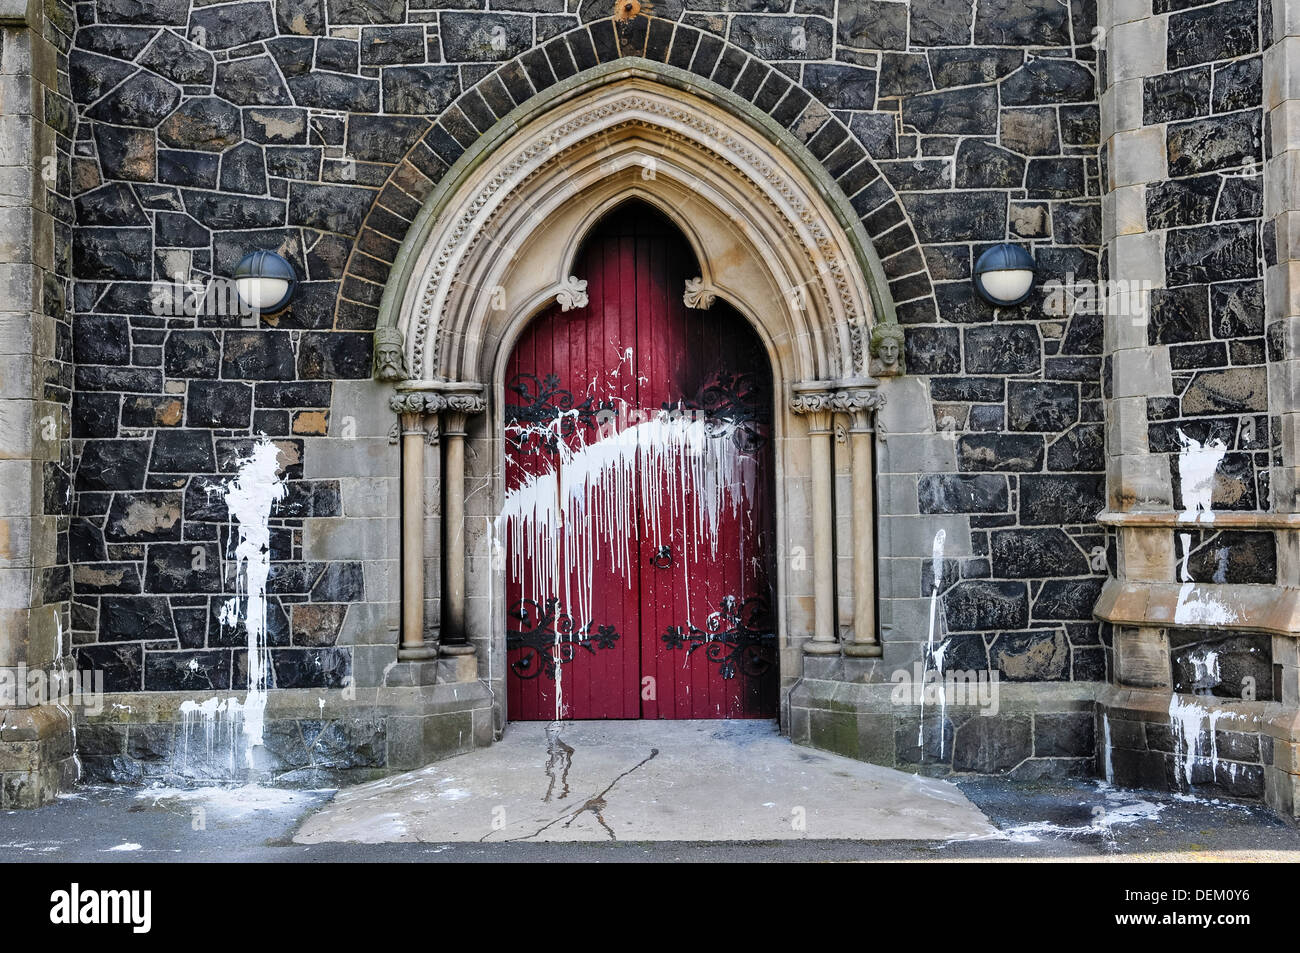 The door of a Roman Catholic Church suffers scorch damage from petrol bombs and paint during a sectarian attack © Stephen Barnes/Alamy Live News - Stock Image